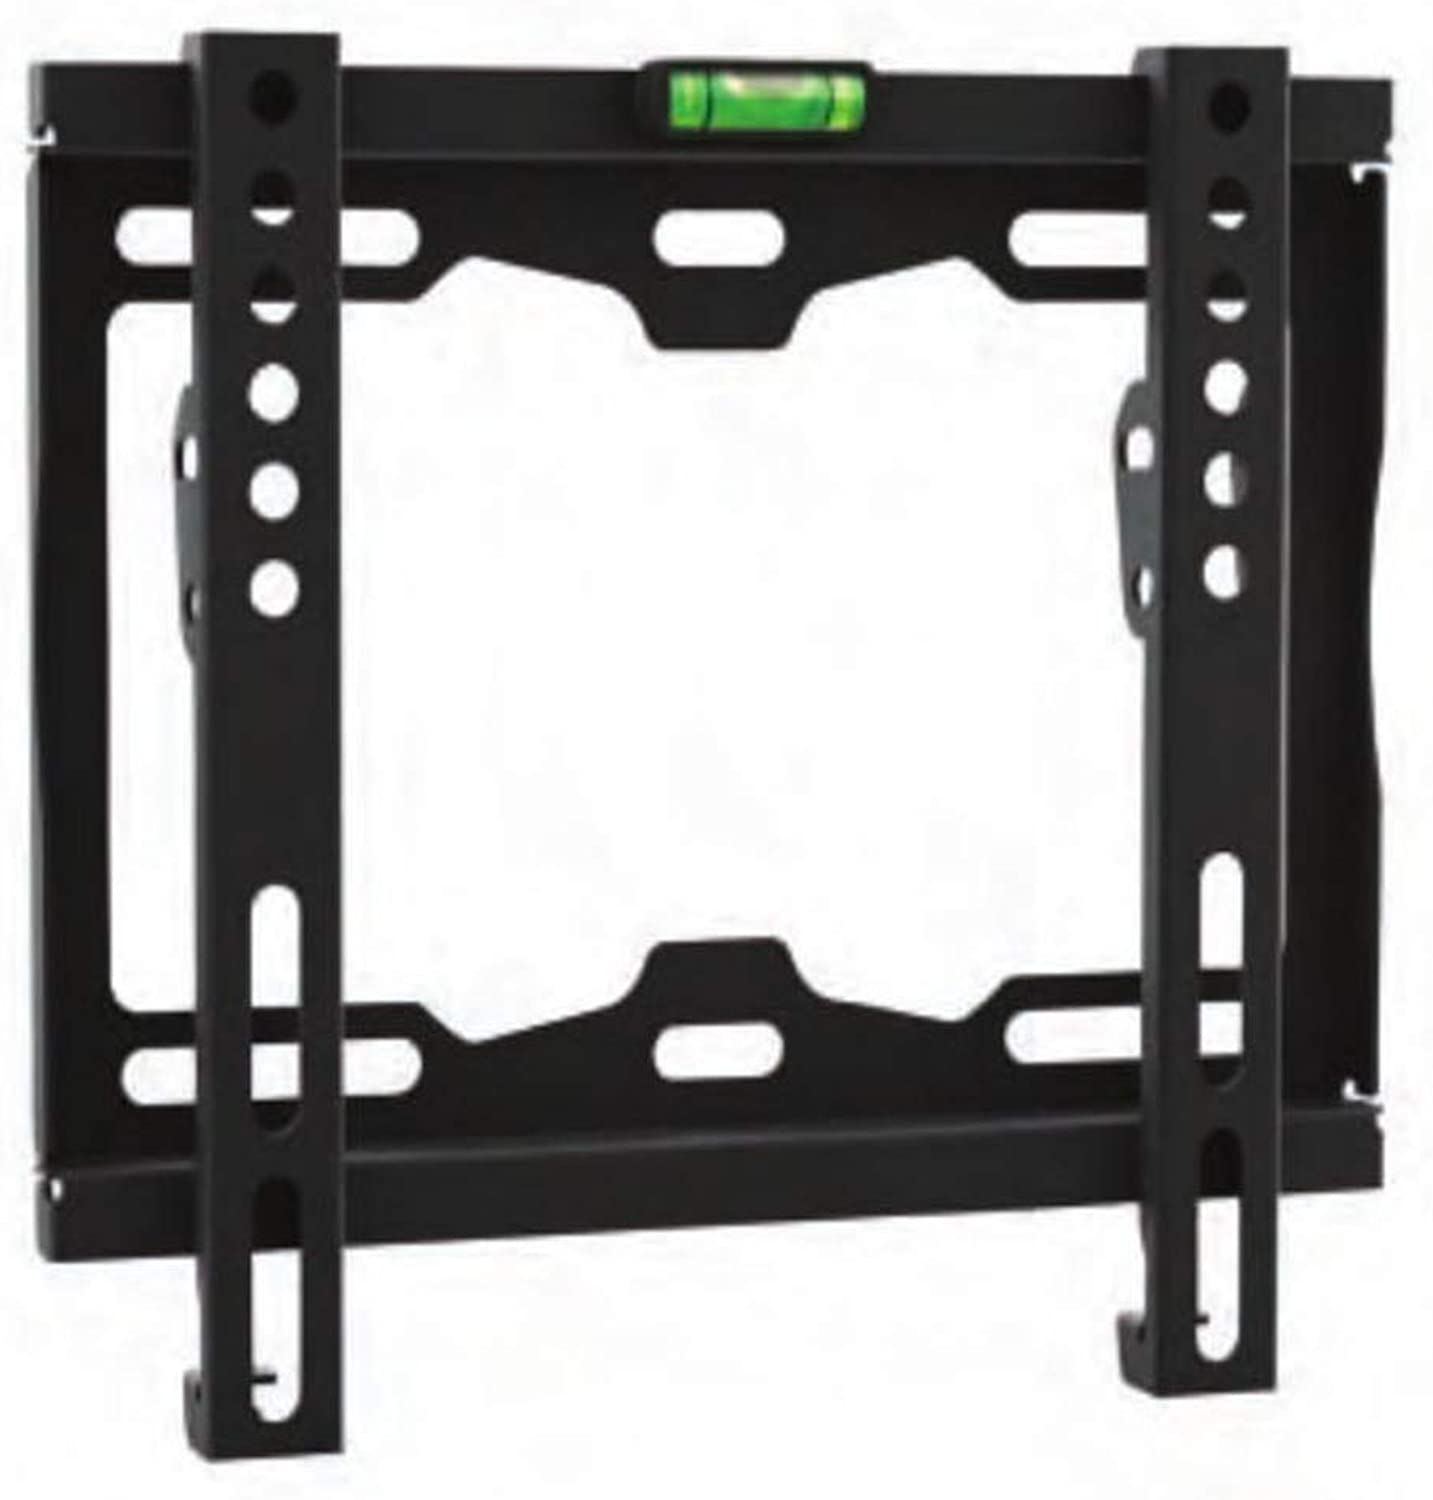 14-42  Fixed TV Wall Mount Bracket for LED, LCD, Flat Screen TV Stand